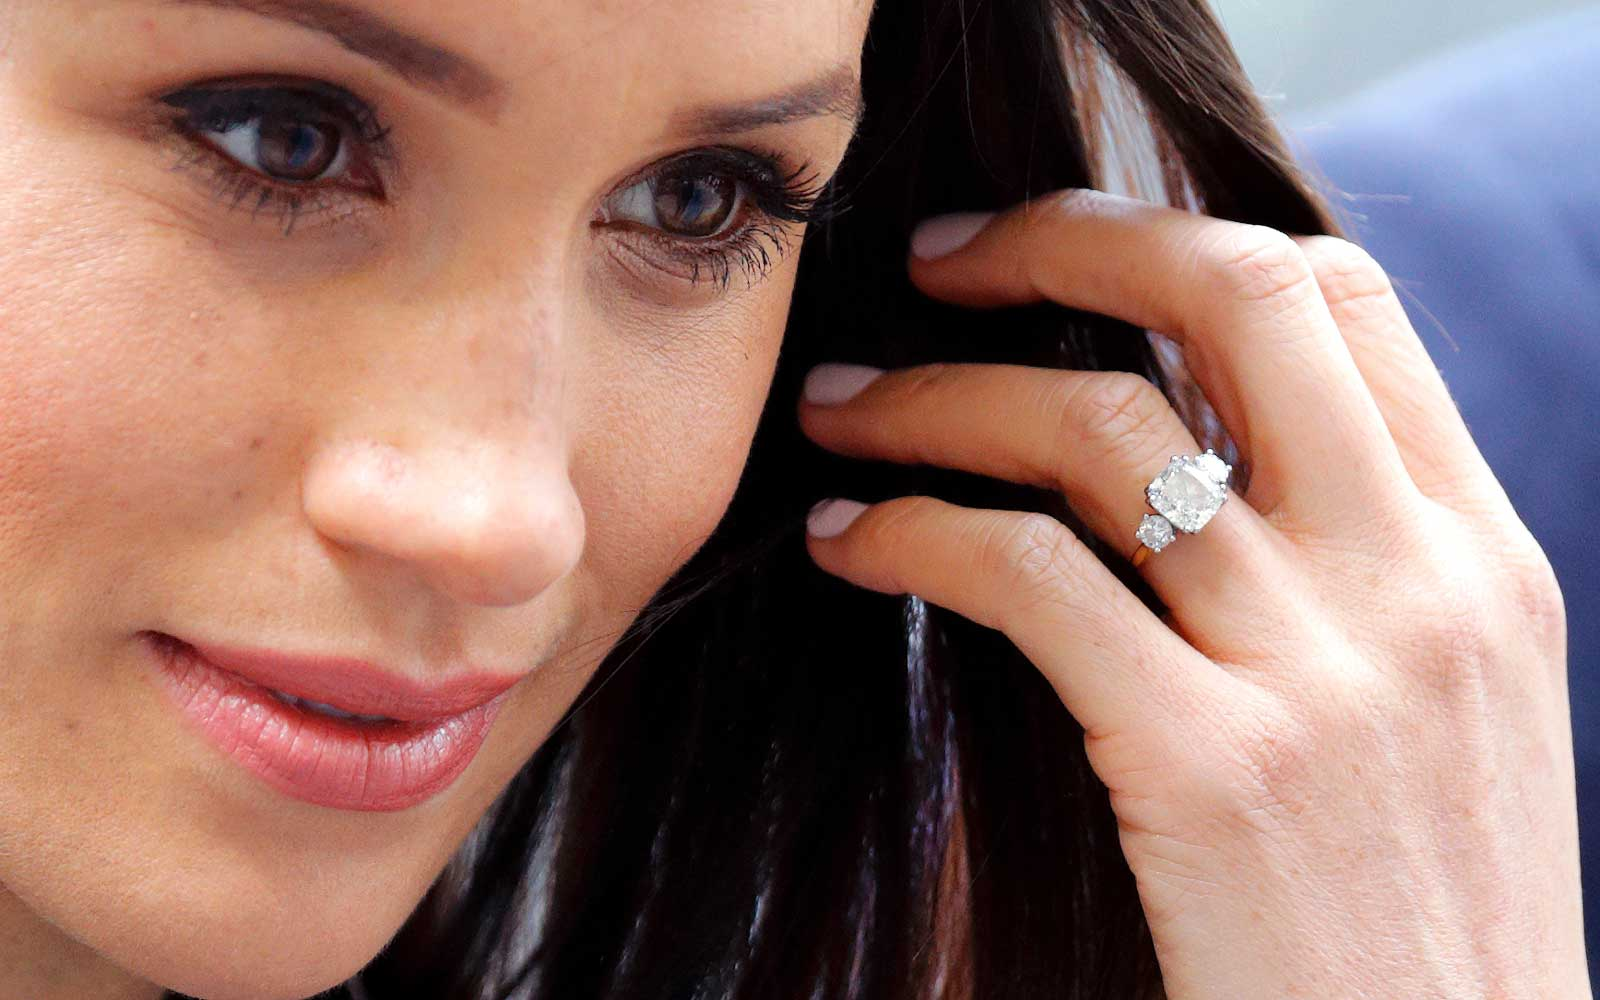 Buckingham Palace Is Selling an Engagement Ring Inspired by Meghan Markle's — for Only $40